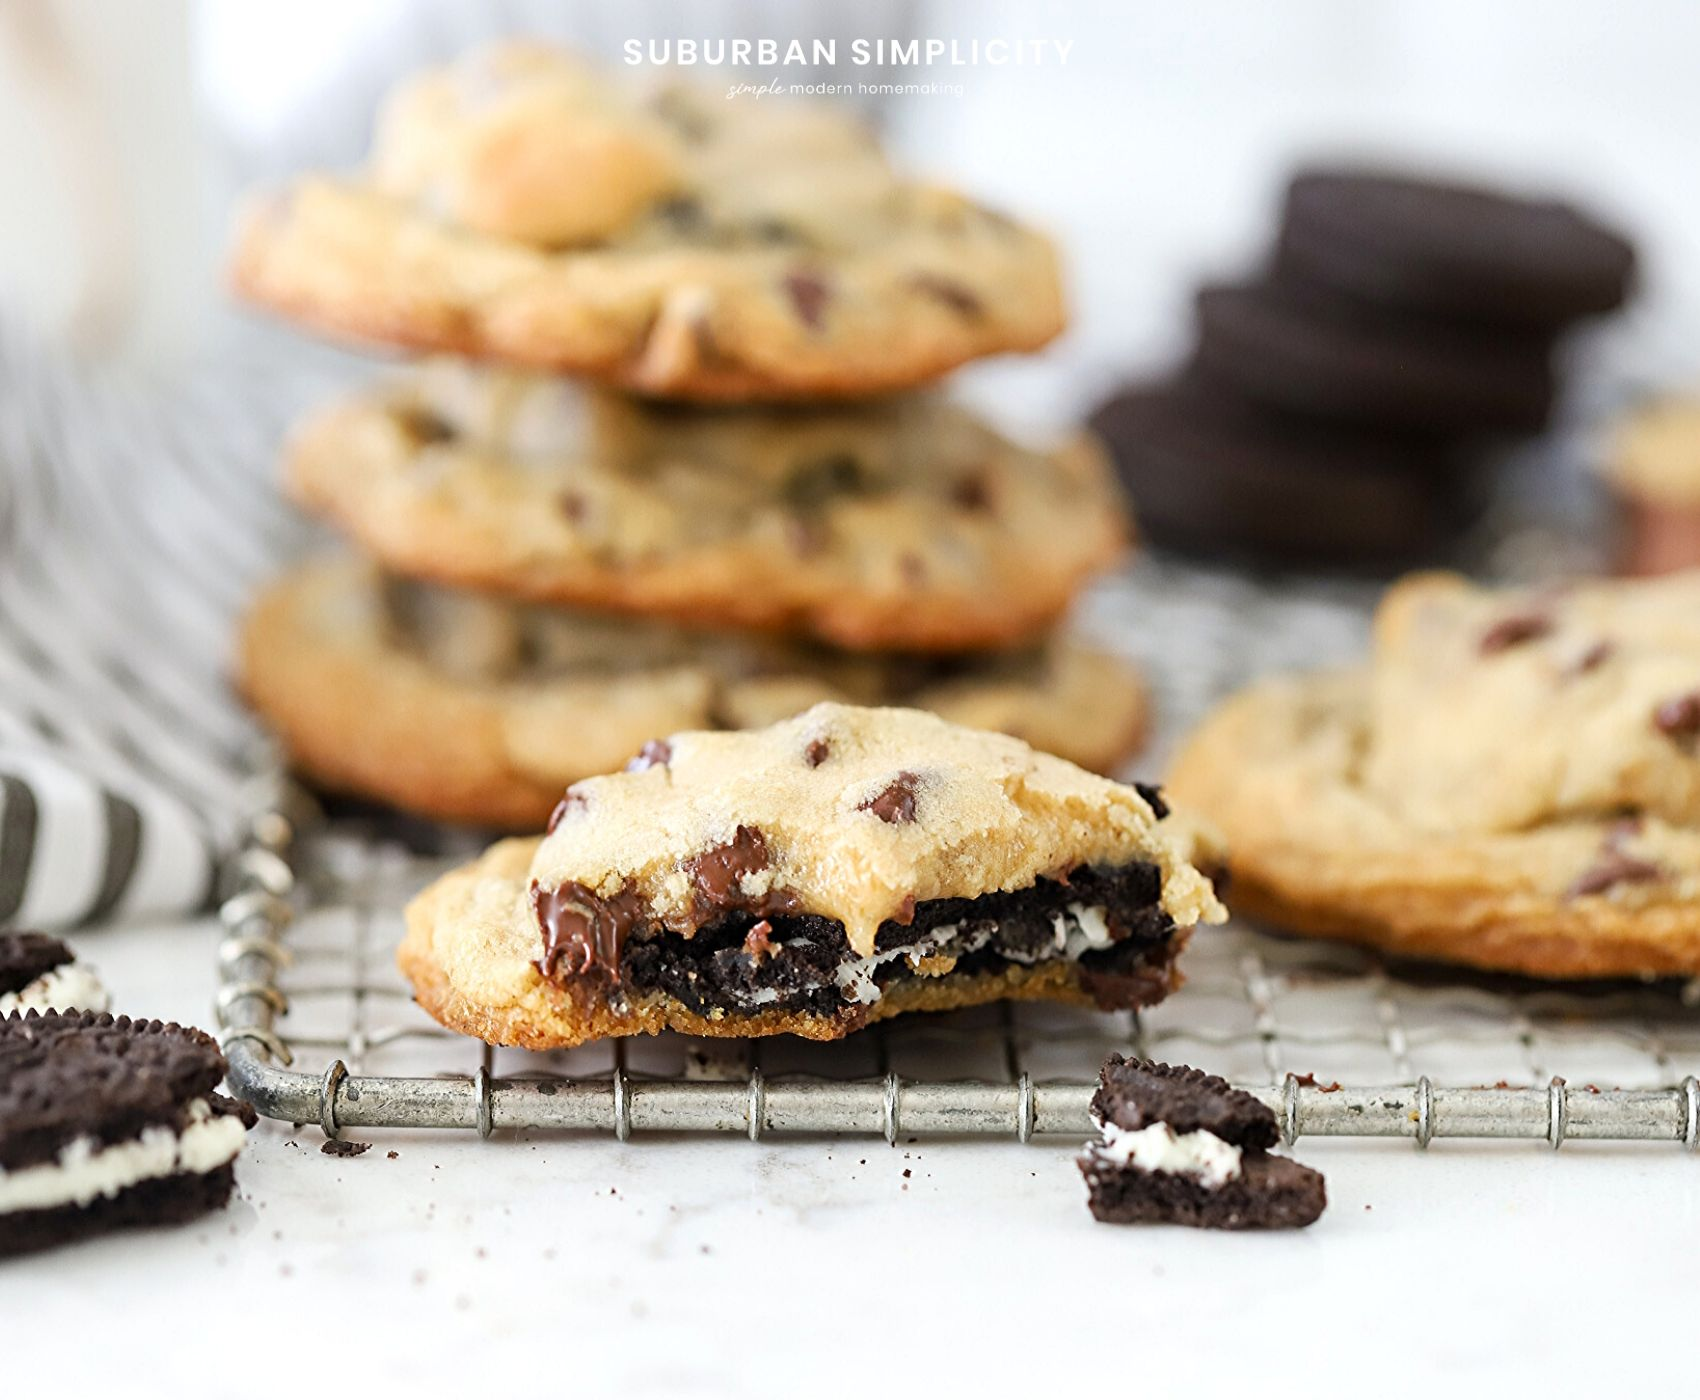 Love Oreos? Then you HAVE to try this Oreo Stuffed Chocolate Chip Cookies recipe. Delicious homemade chocolate chip cookies with an Oreo cookie nestled inside! Best Cookie Ever!